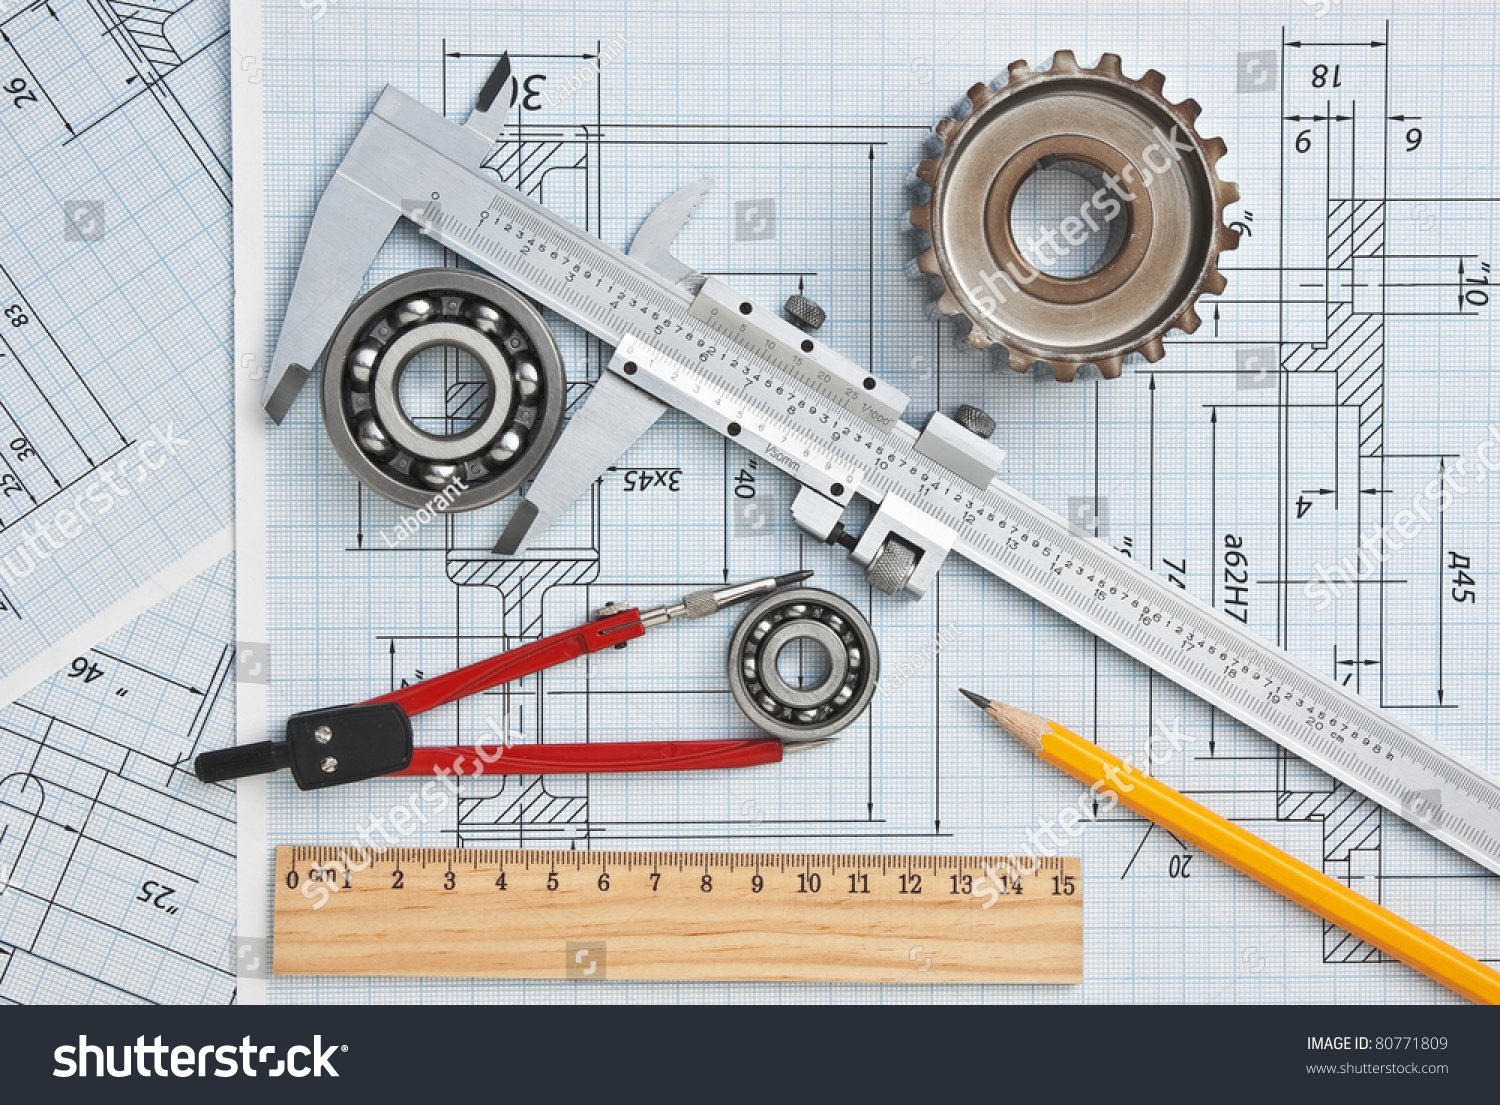 Technical Drawing Tools Stock Photo (Royalty Free) 80771809 ...